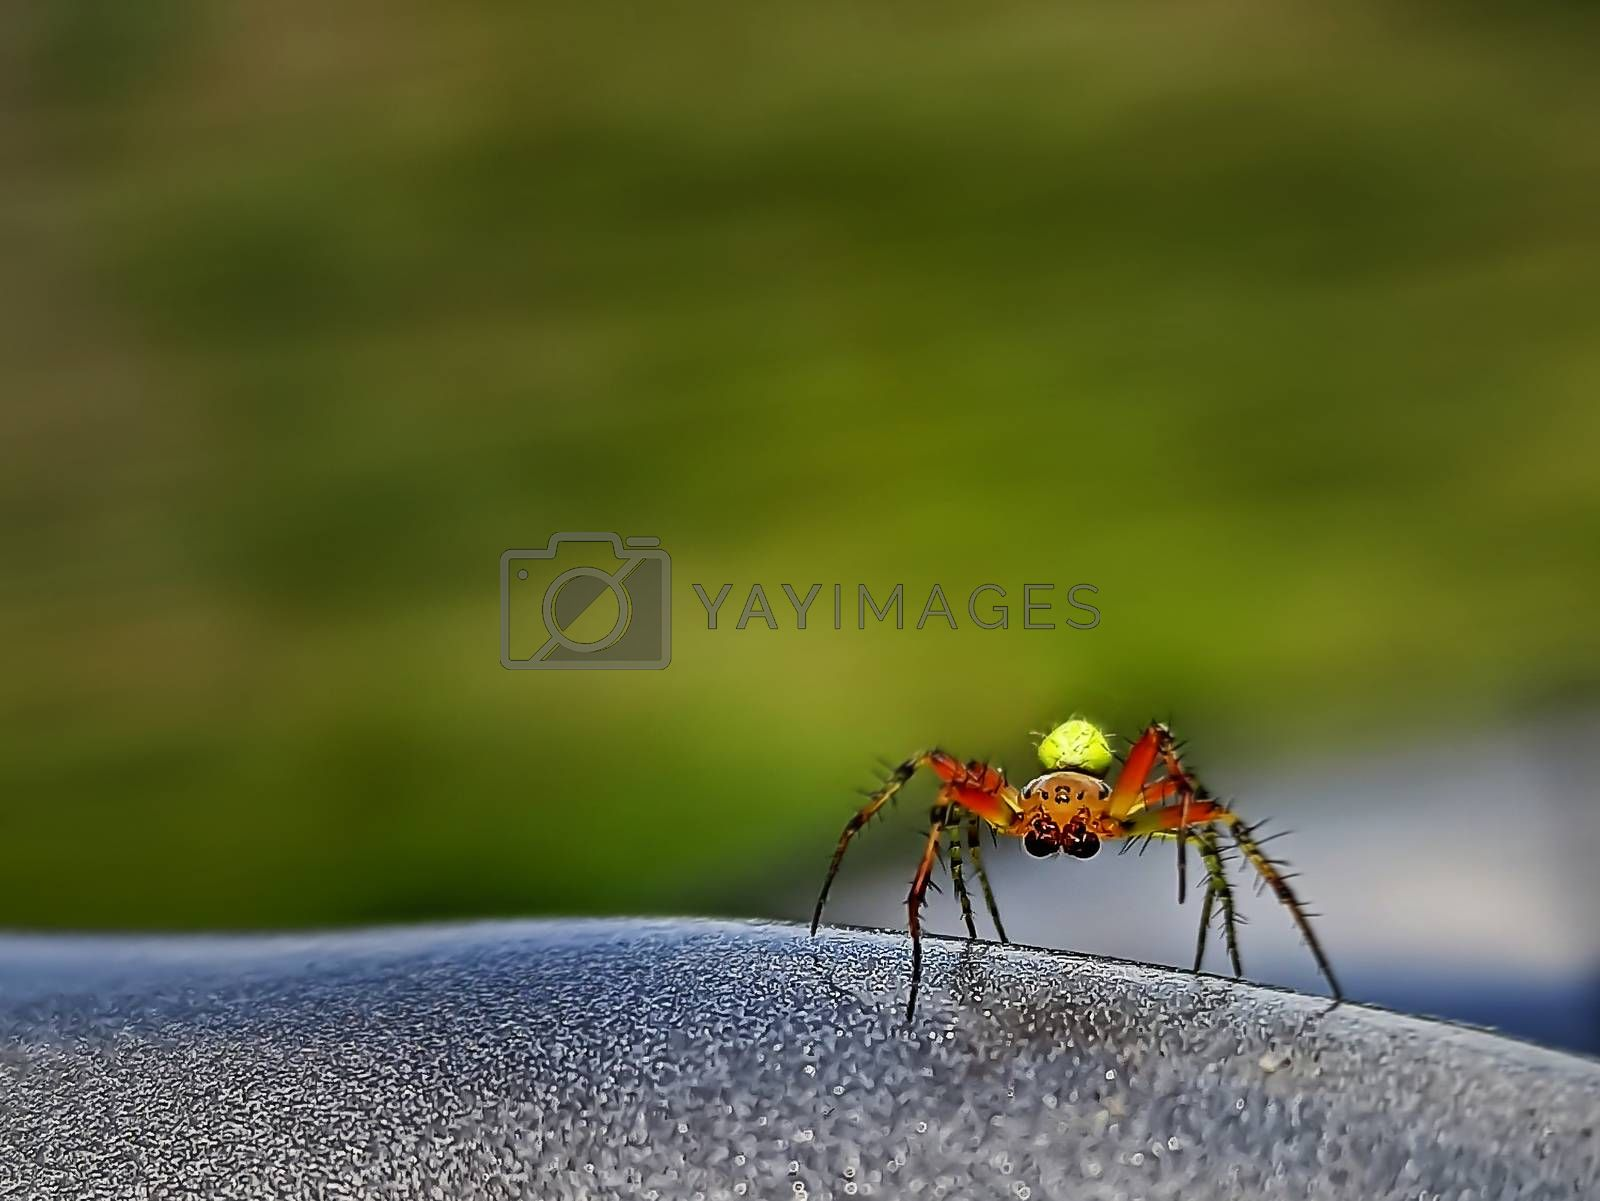 Spider with big eyes and yellow abdomen at steering wheel. Close up of dangerous and fearful, insect as trip companion. Poisonous voyage buddy portrait. Frightening friendship. Unsafe travelling photo